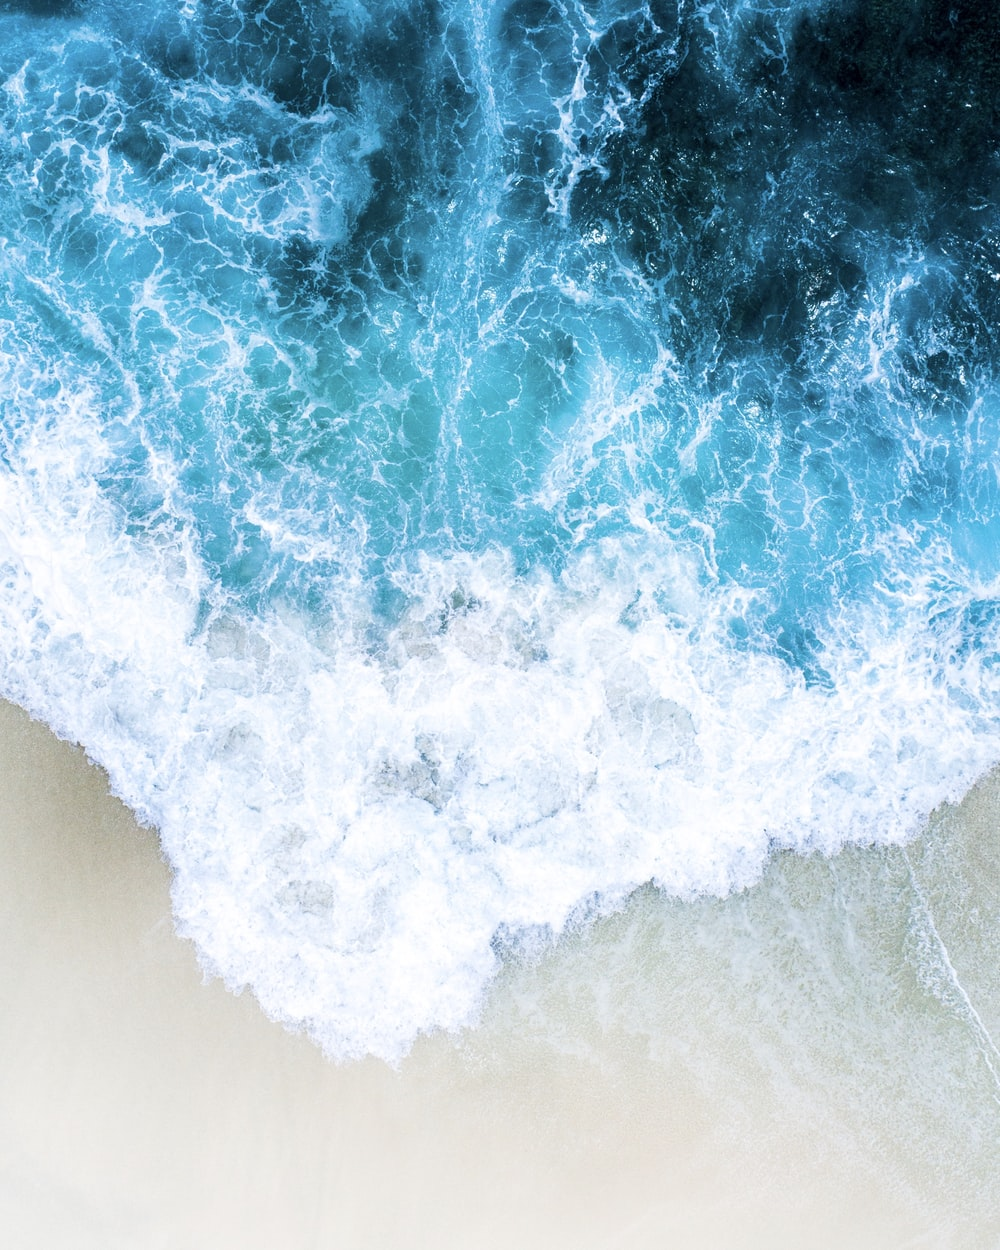 aerial photo of body of water wallpaper